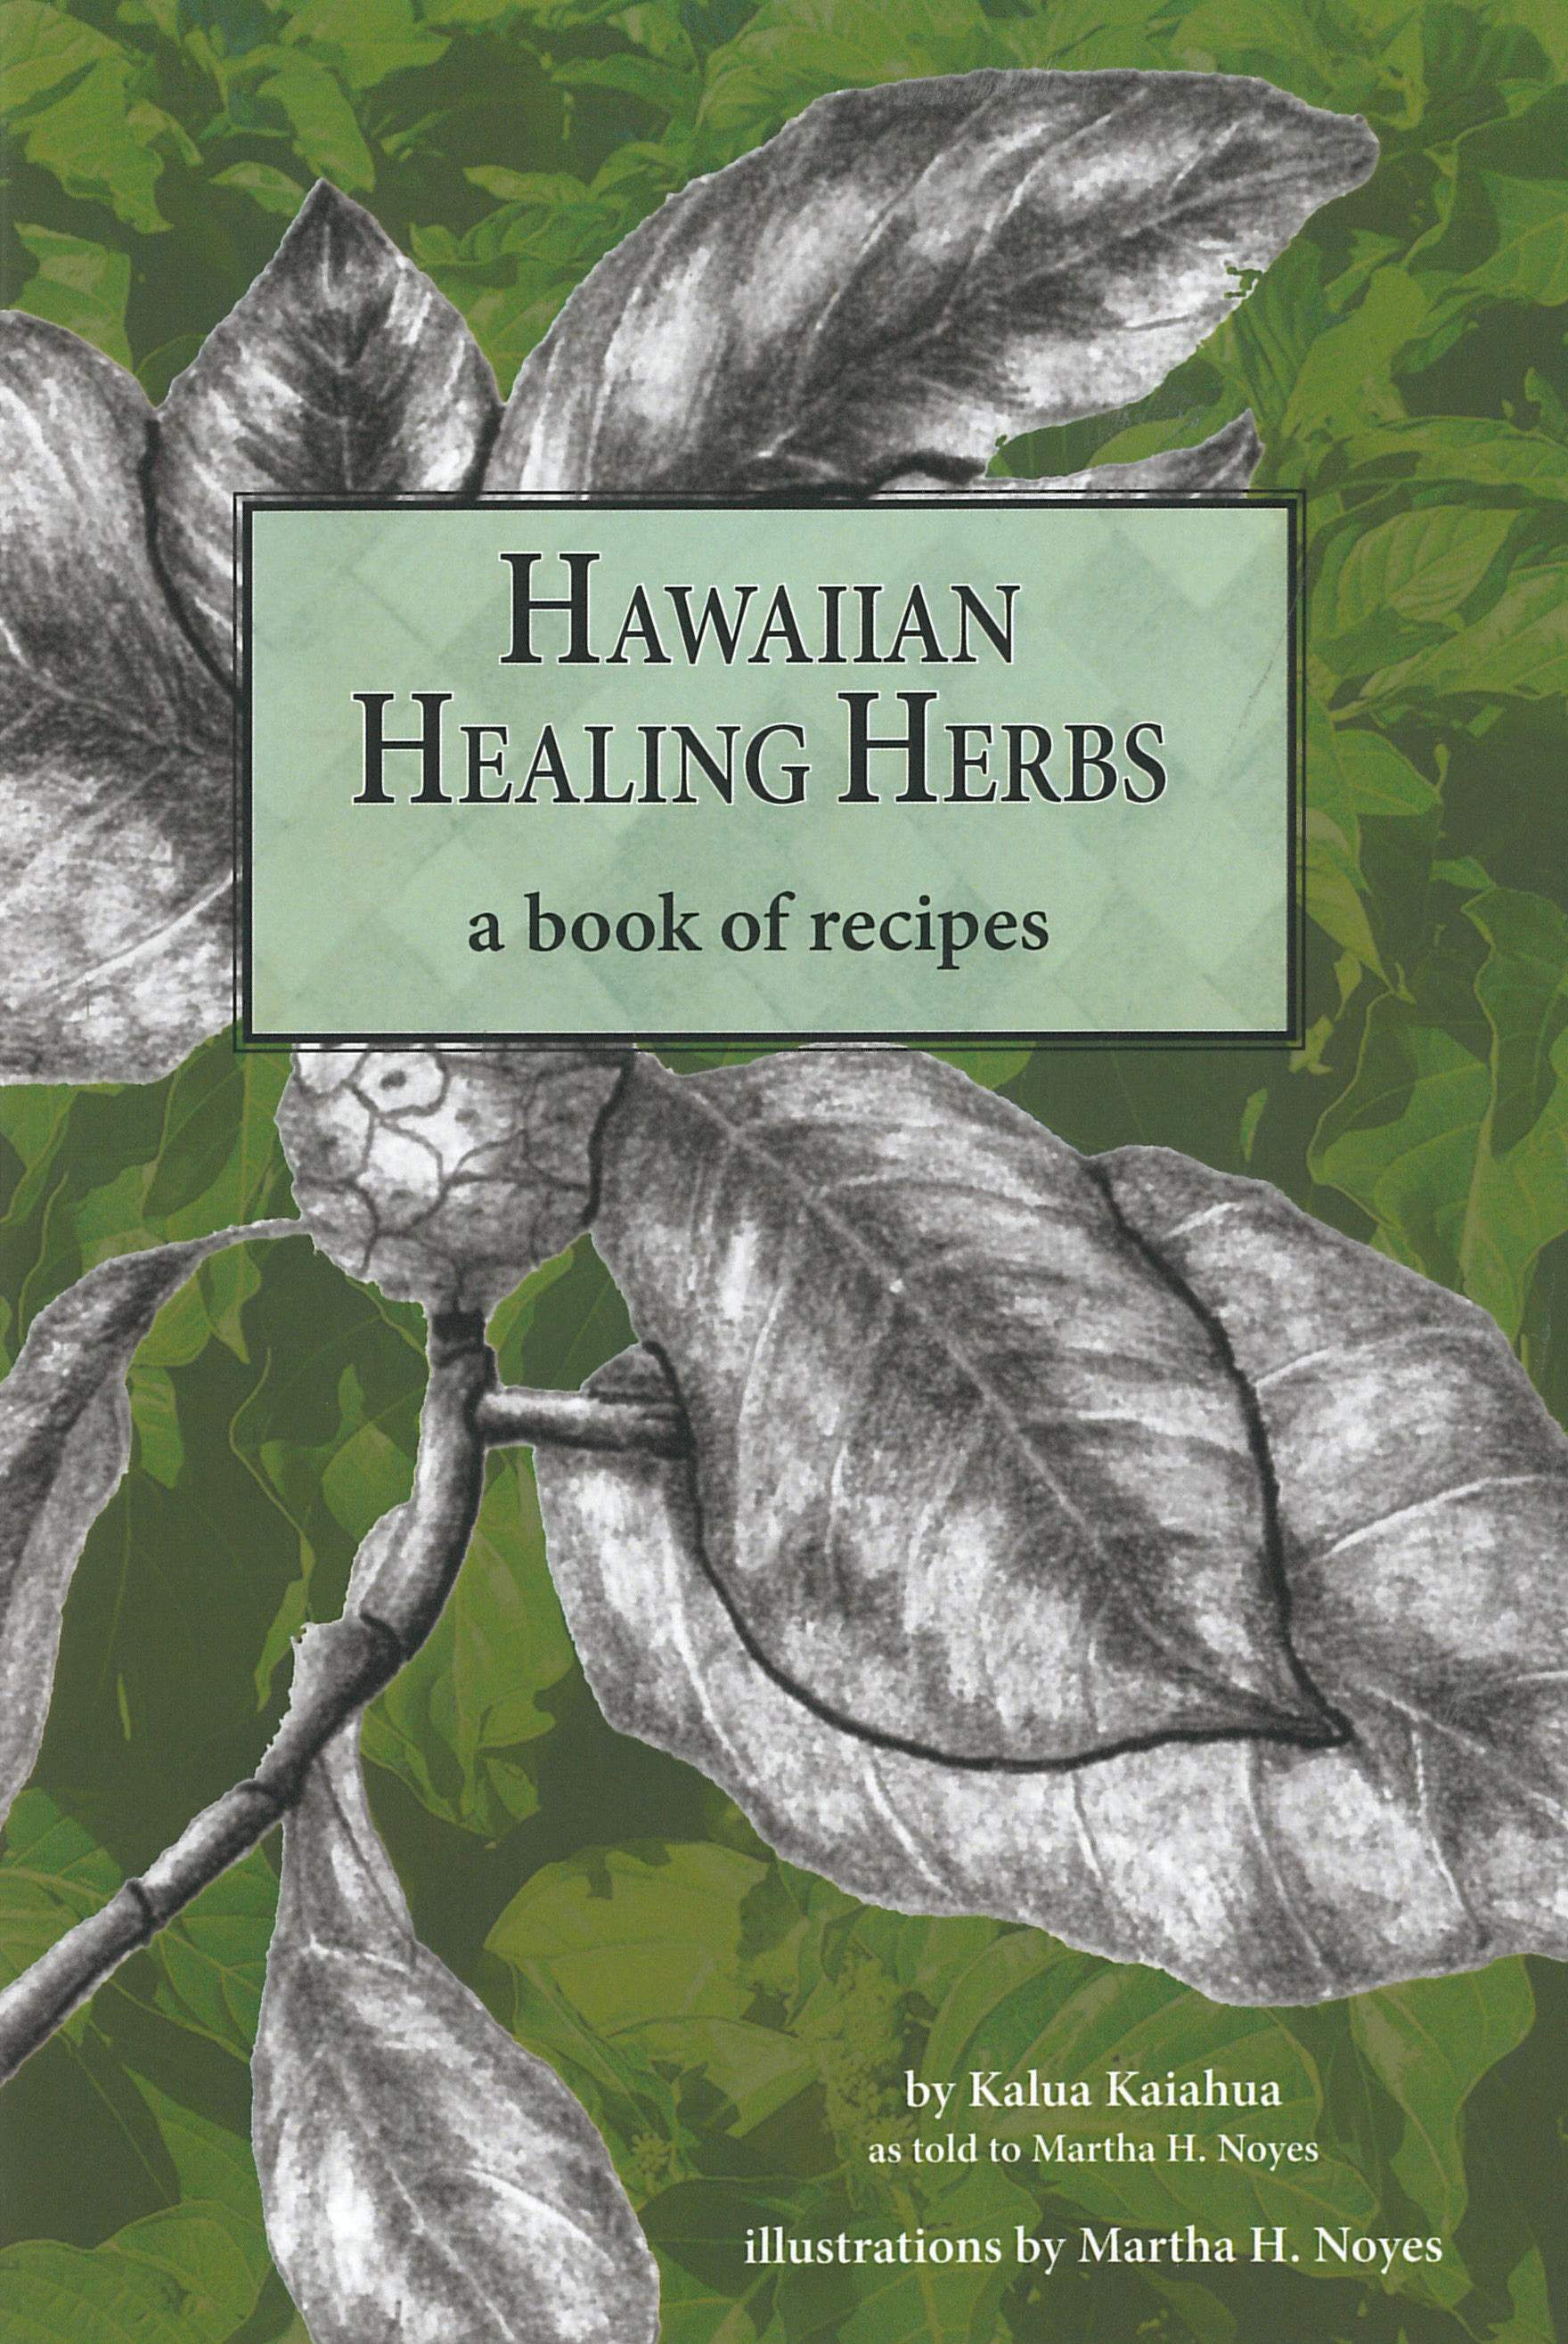 Hawaiian Healing Herbs a book of recipes